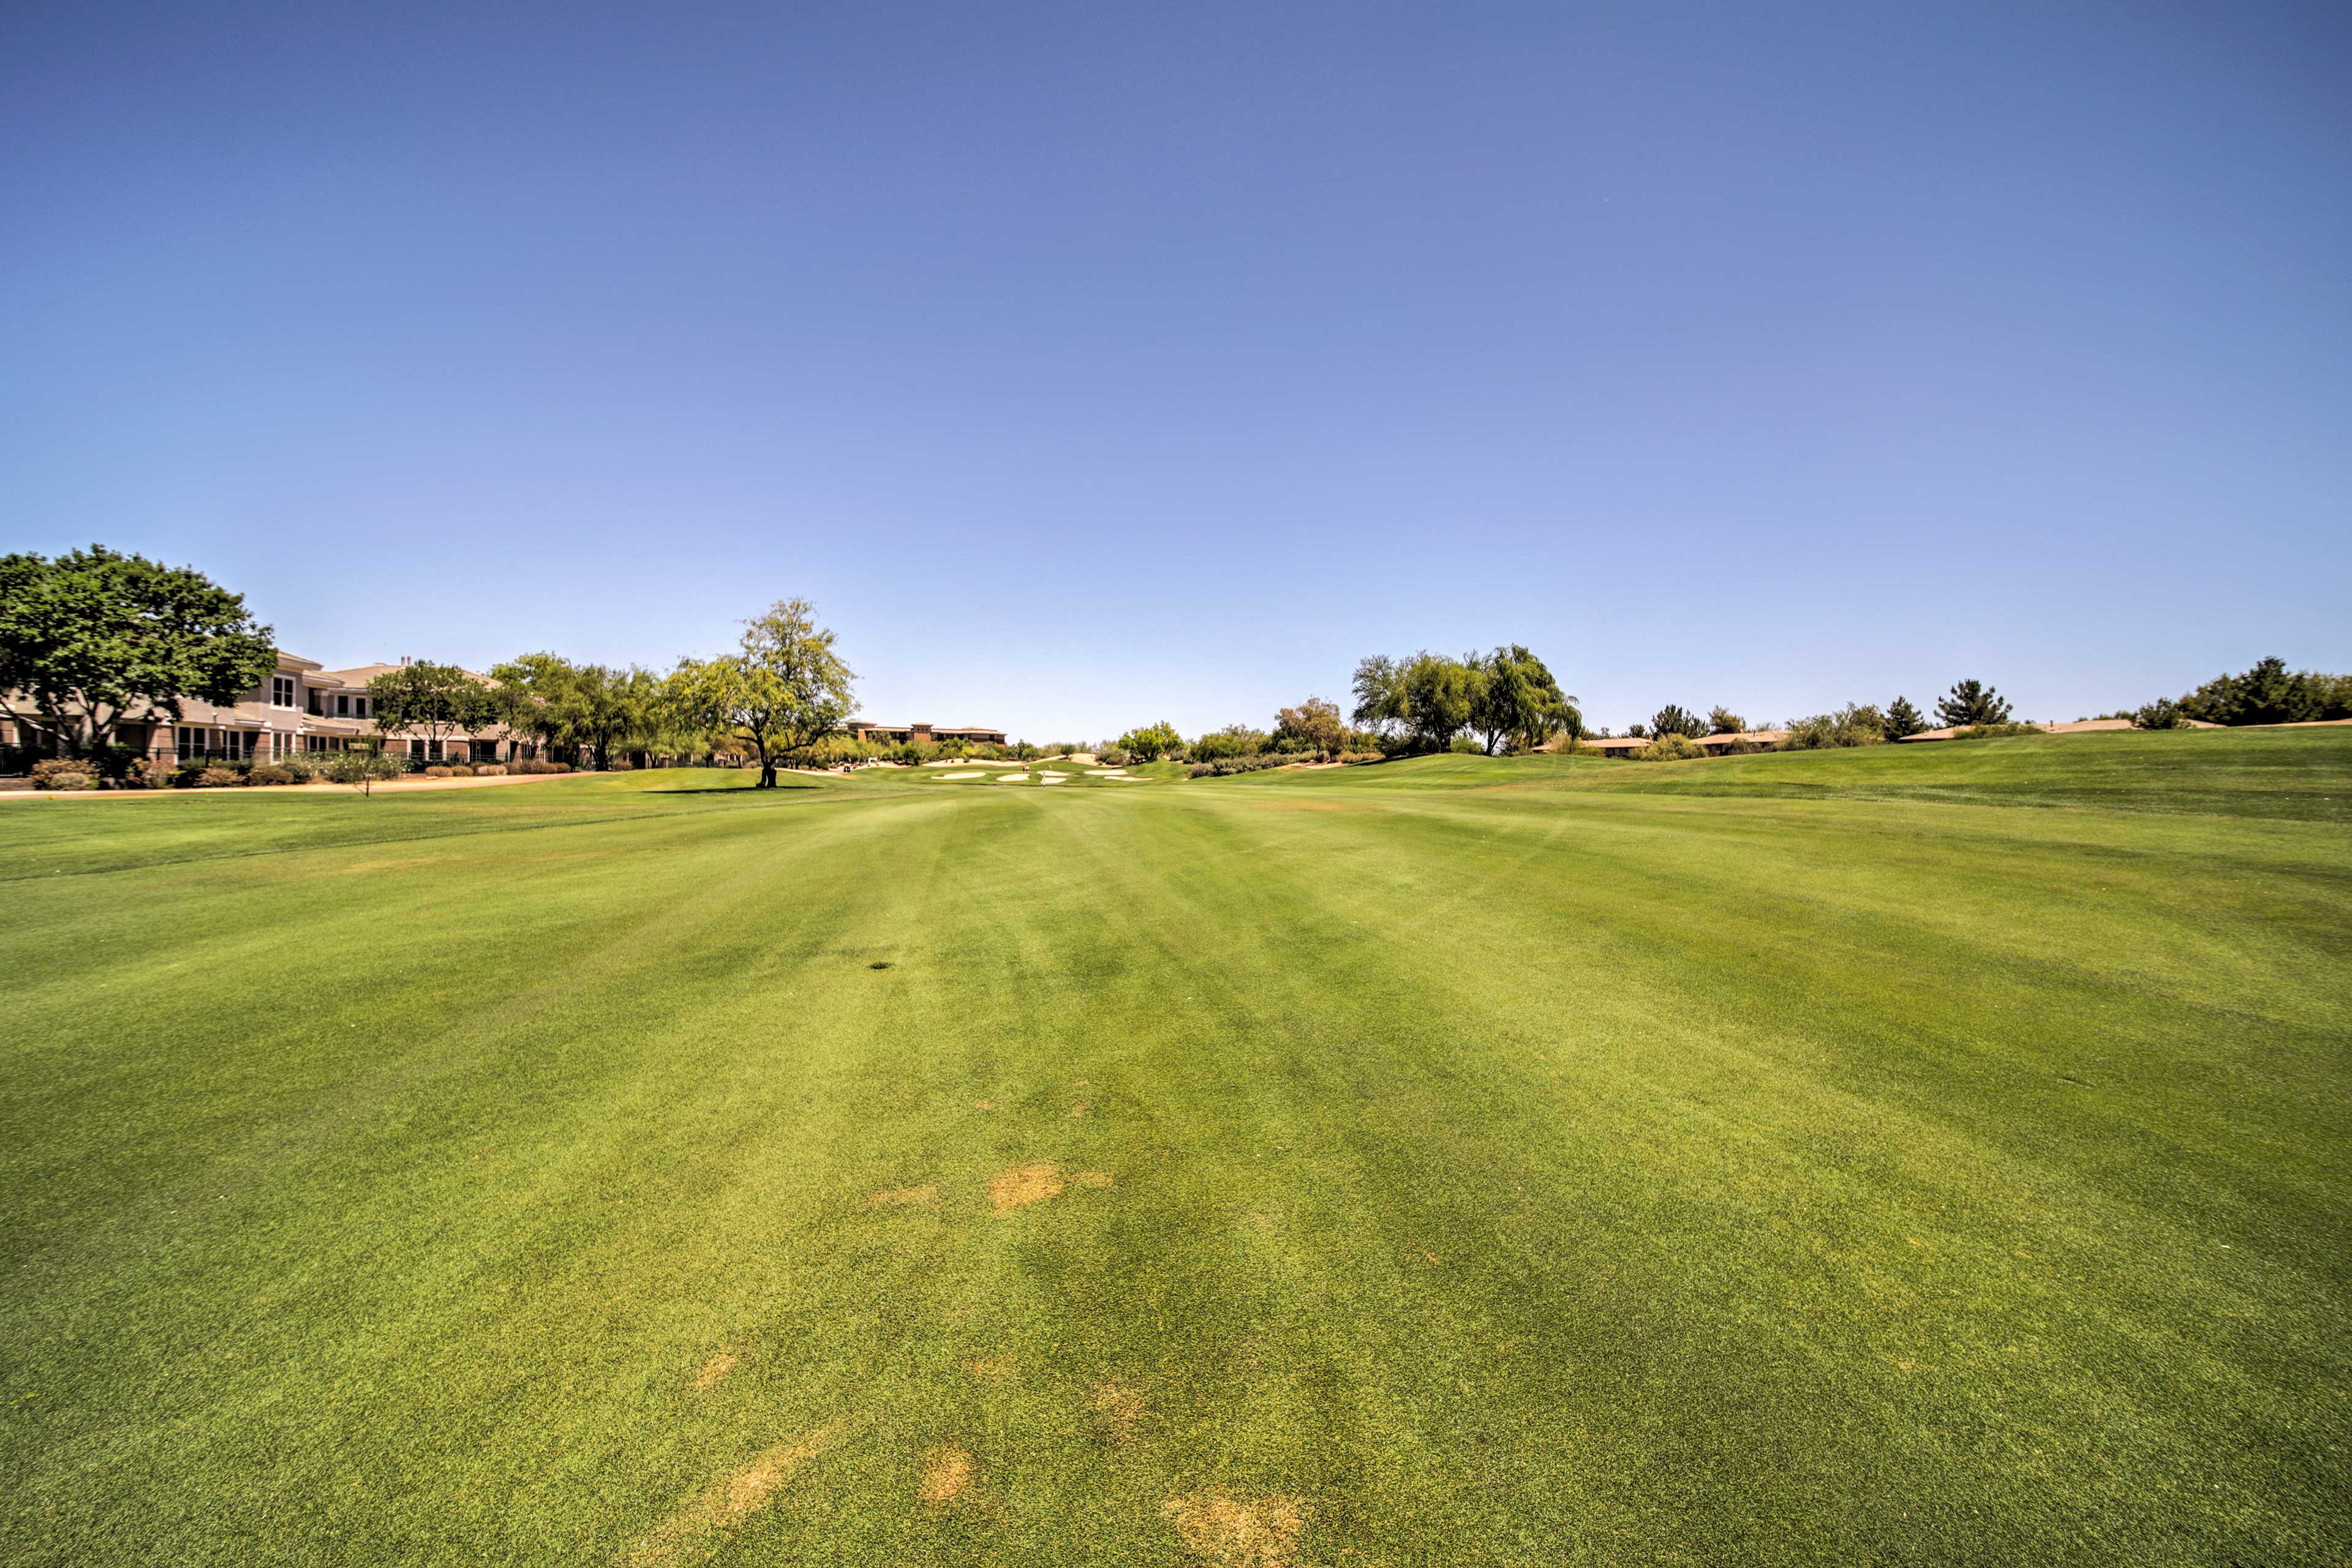 Channel your inner Tiger Woods at Westin Kierland Golf Club.